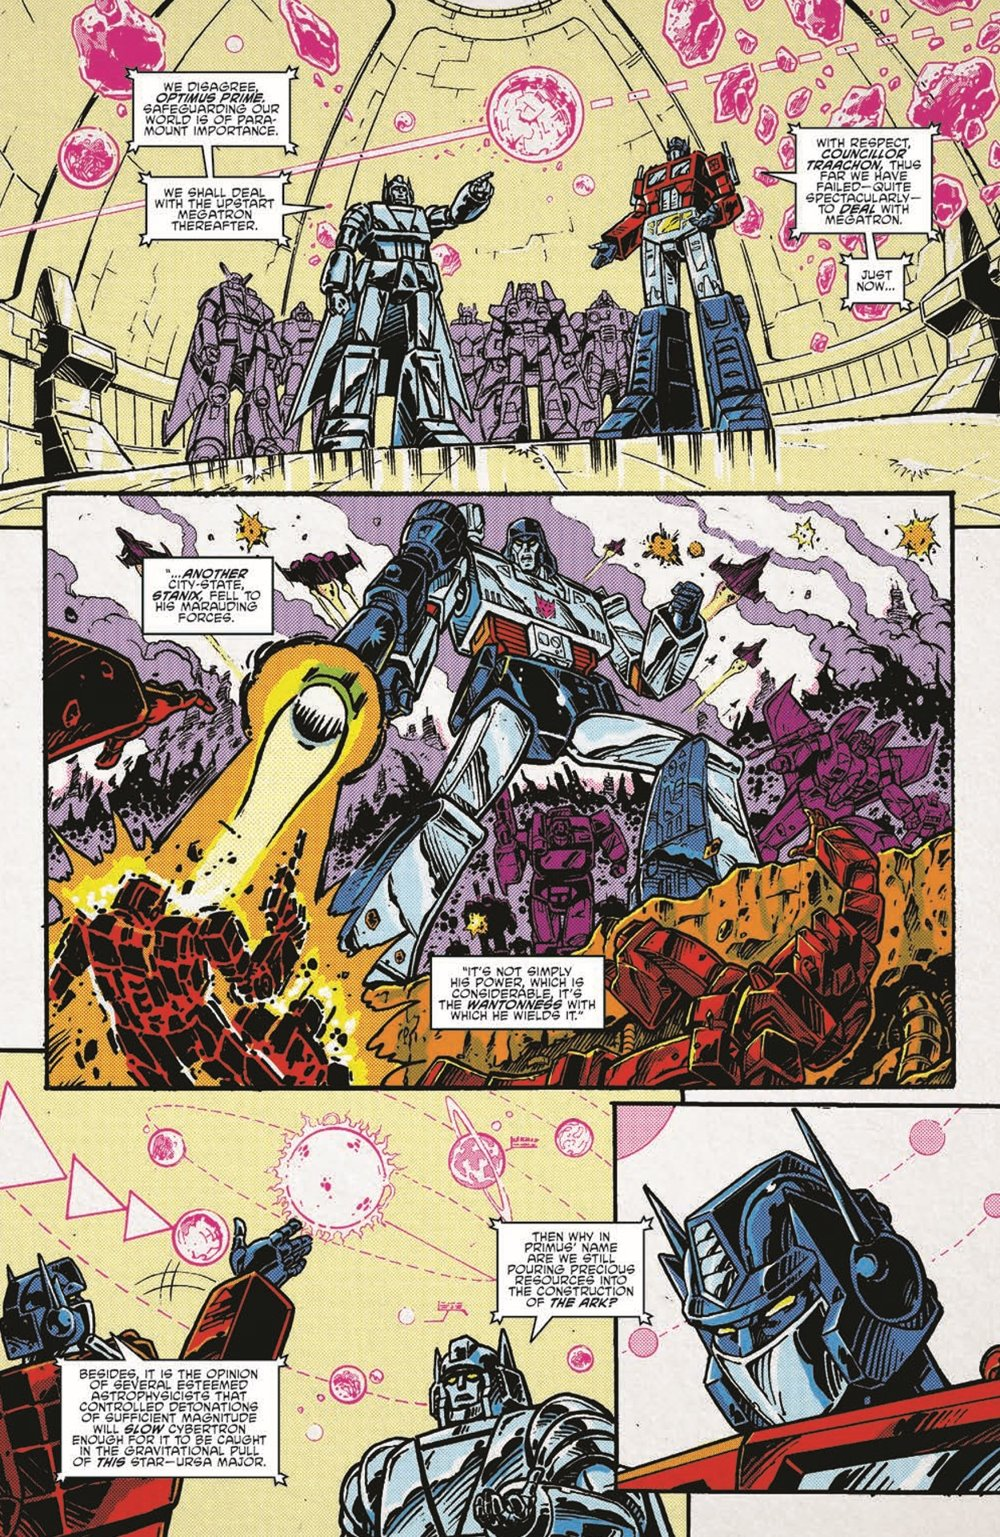 TF84_Secrets_Lies_TPB_pr-7 ComicList Previews: TRANSFORMERS '84 SECRETS AND LIES TP